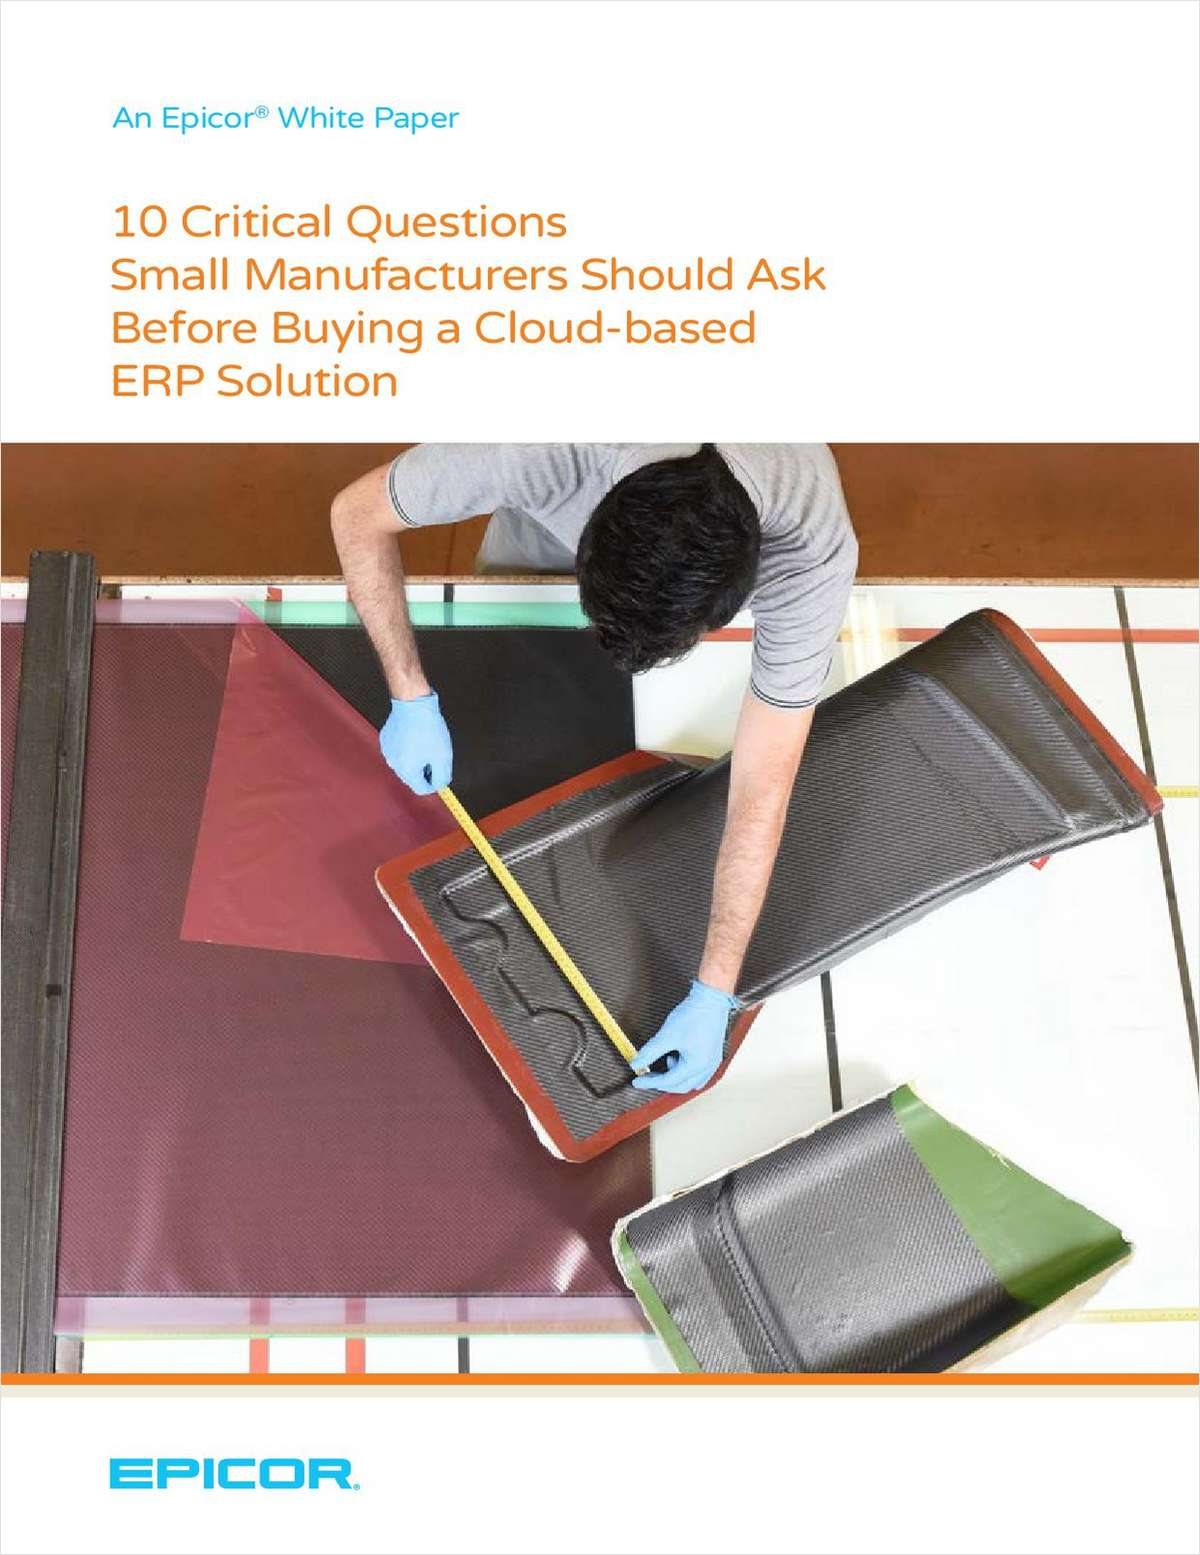 Critical Questions Small Manufacturers Should Ask Before Buying a Cloud-based ERP Solution